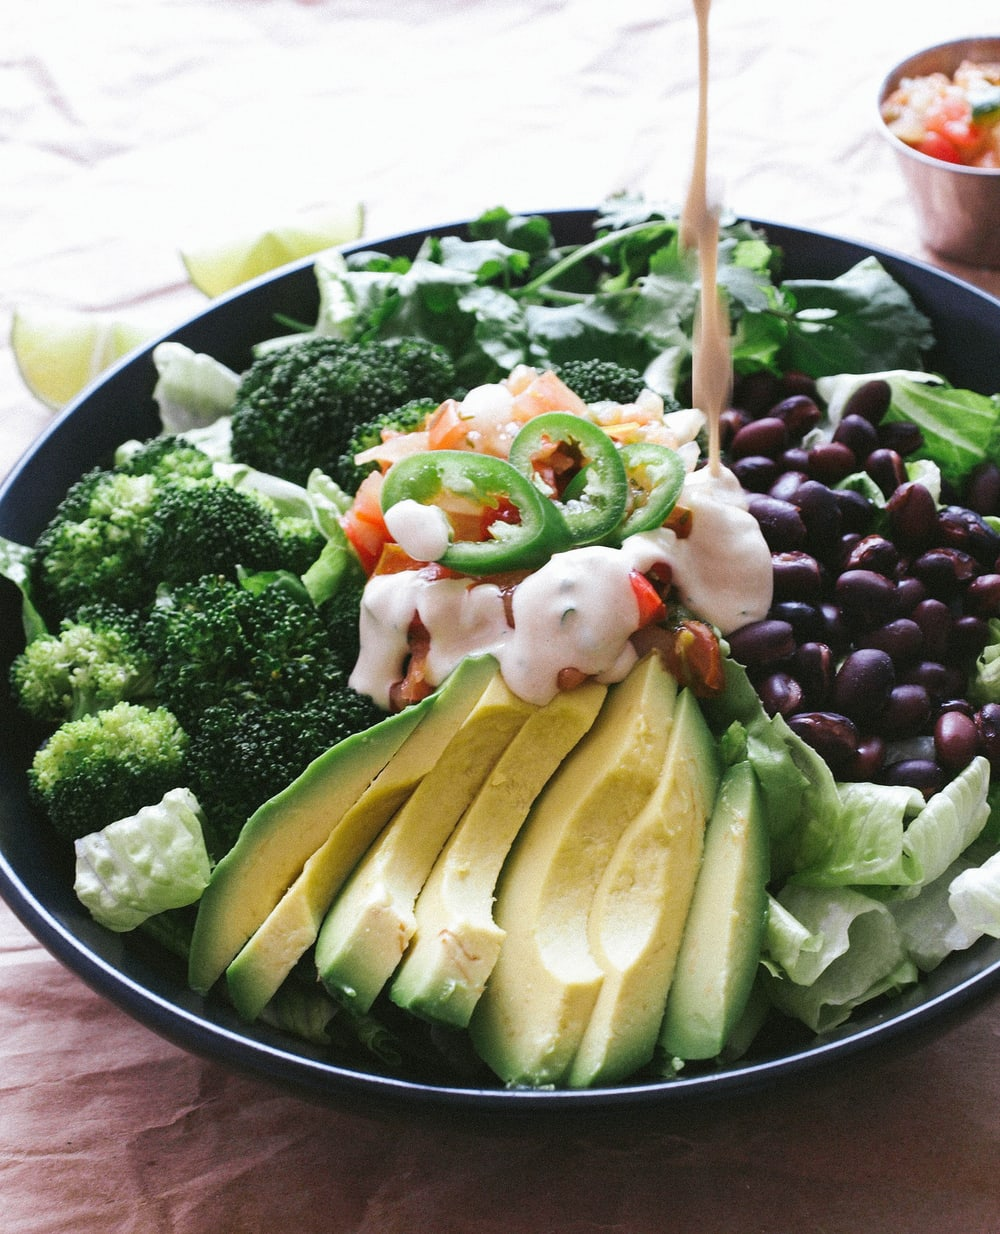 BLACK BEAN, BROCCOLI & AVOCADO SALAD + CUMIN LIME TAHINI DRESSING